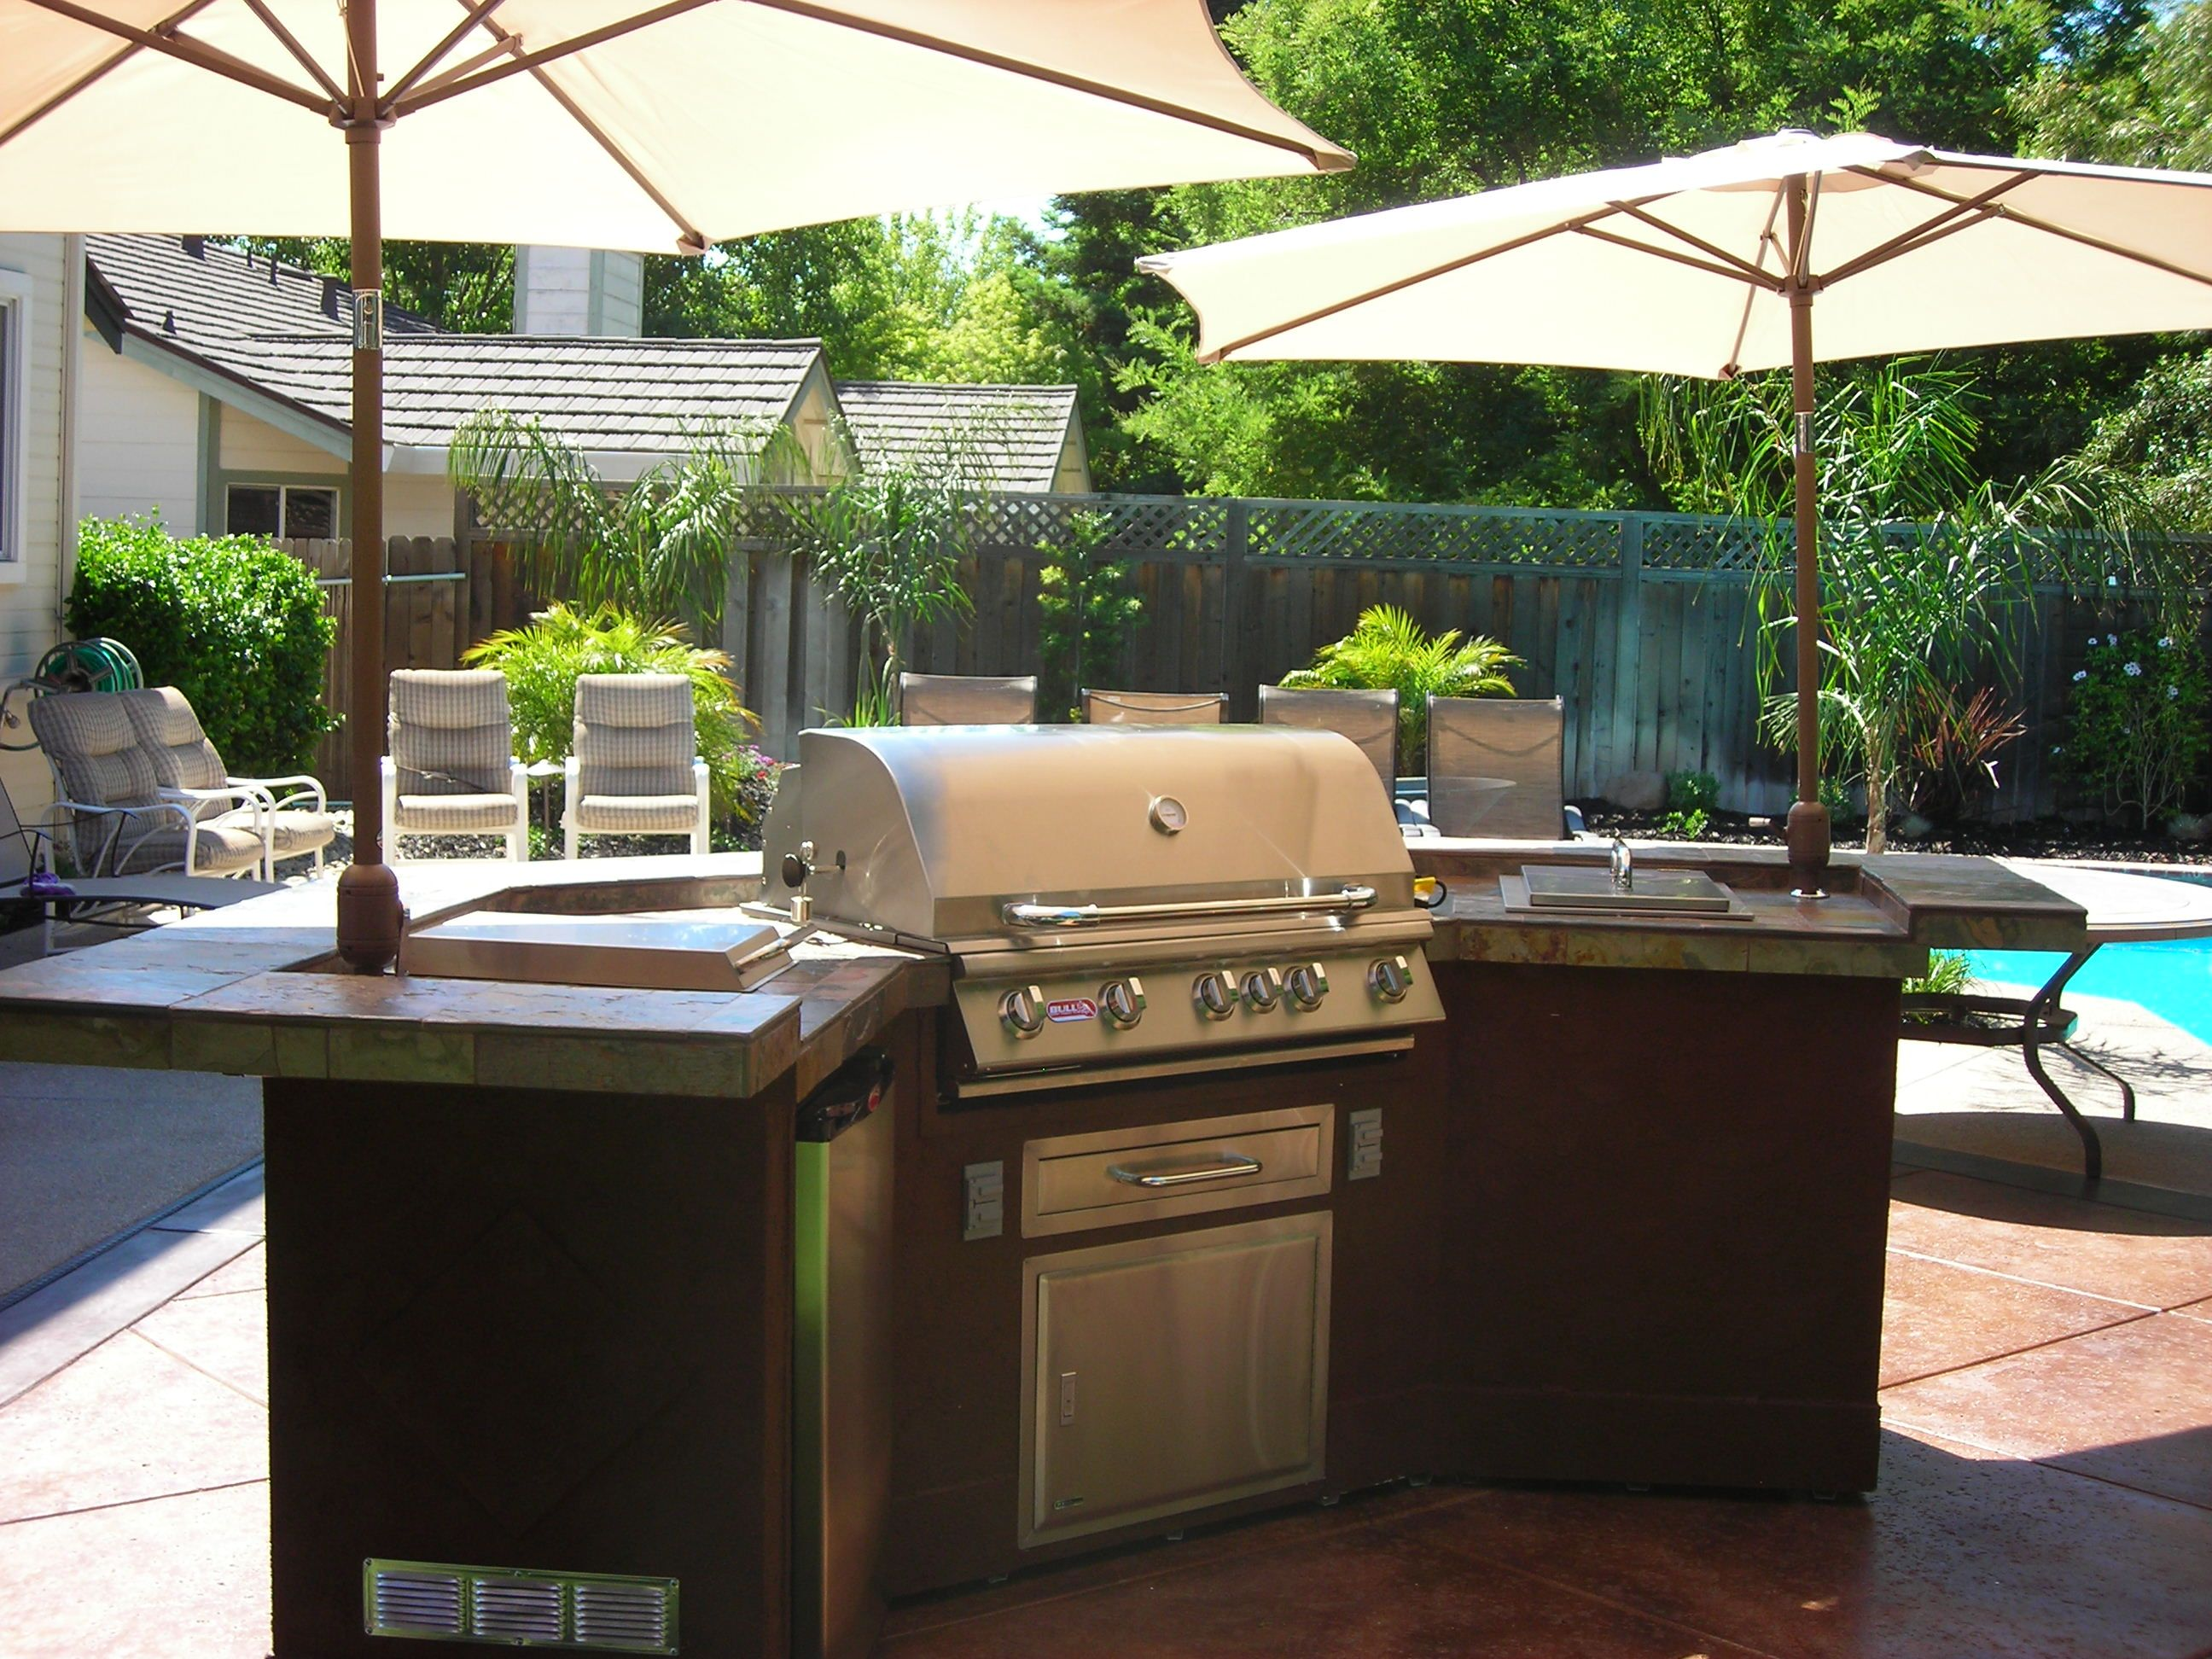 Patio Kitchen Islands Bbq Island With Umbrellas Barbecue Islands Bbq Island Patio